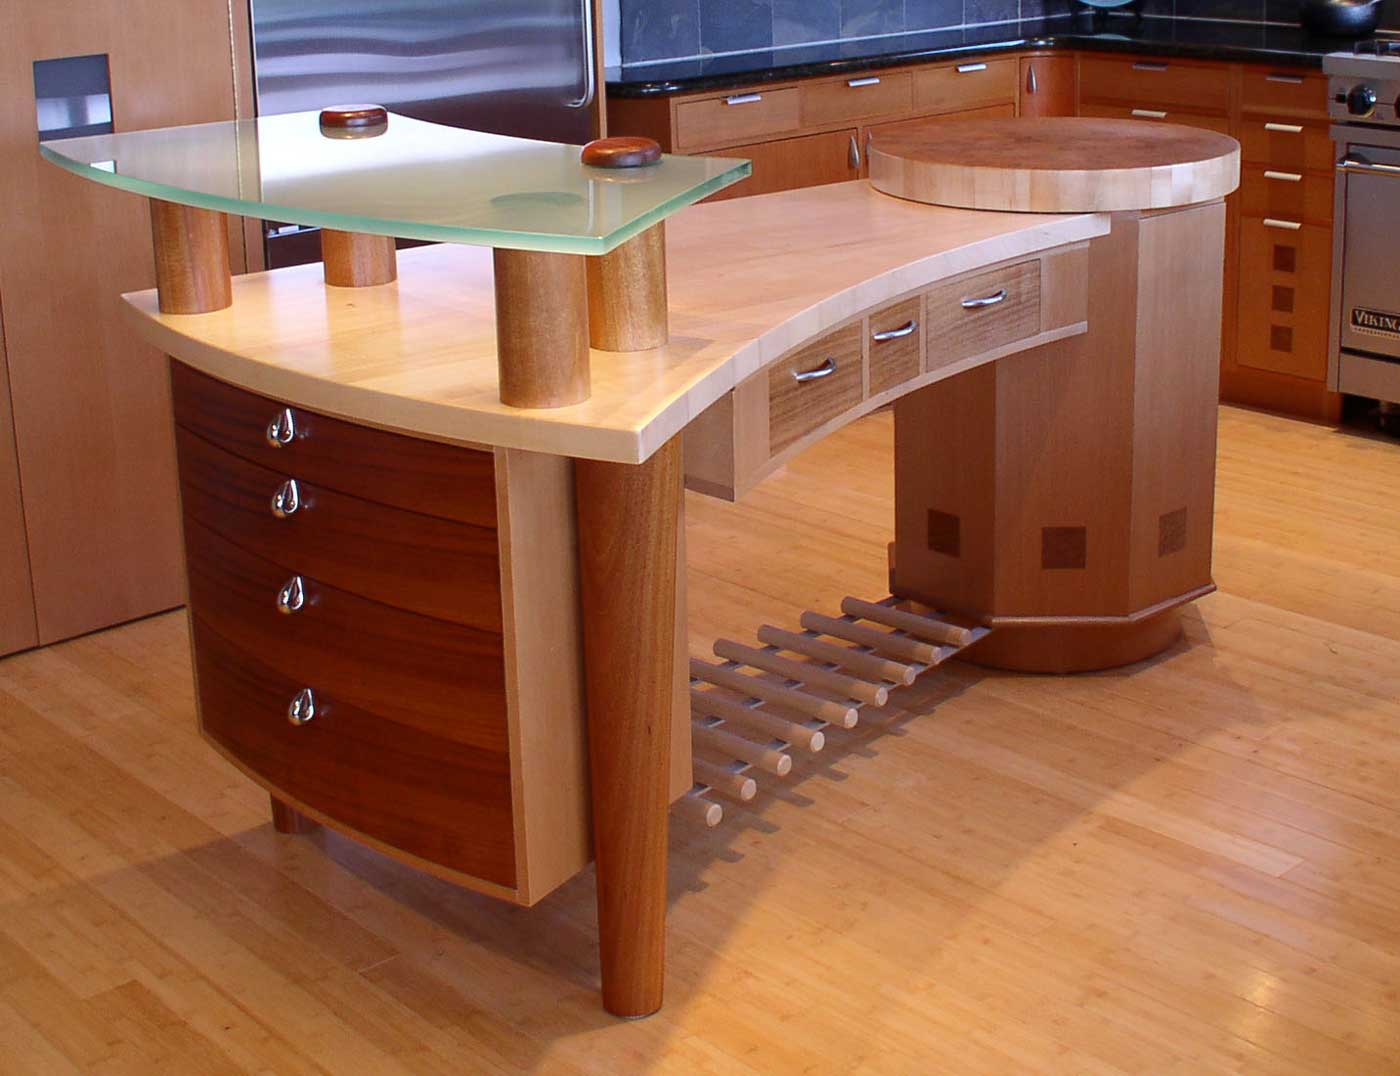 ... Coffee Tables in addition Unusual Coffee Tables Wood. on handmade wood